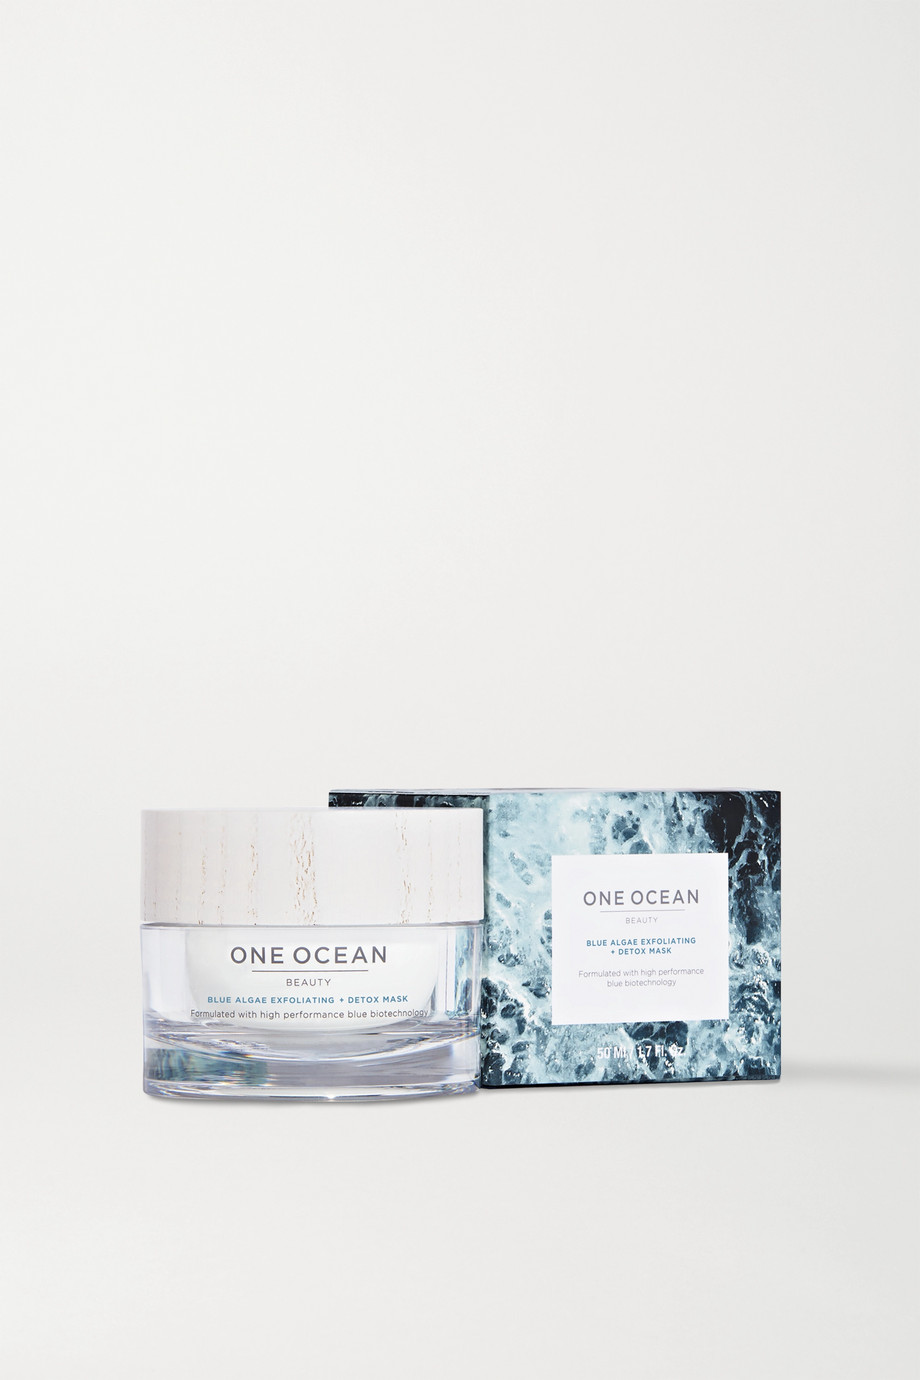 One Ocean Beauty Blue Algae Exfoliating + Detox Mask, 50ml